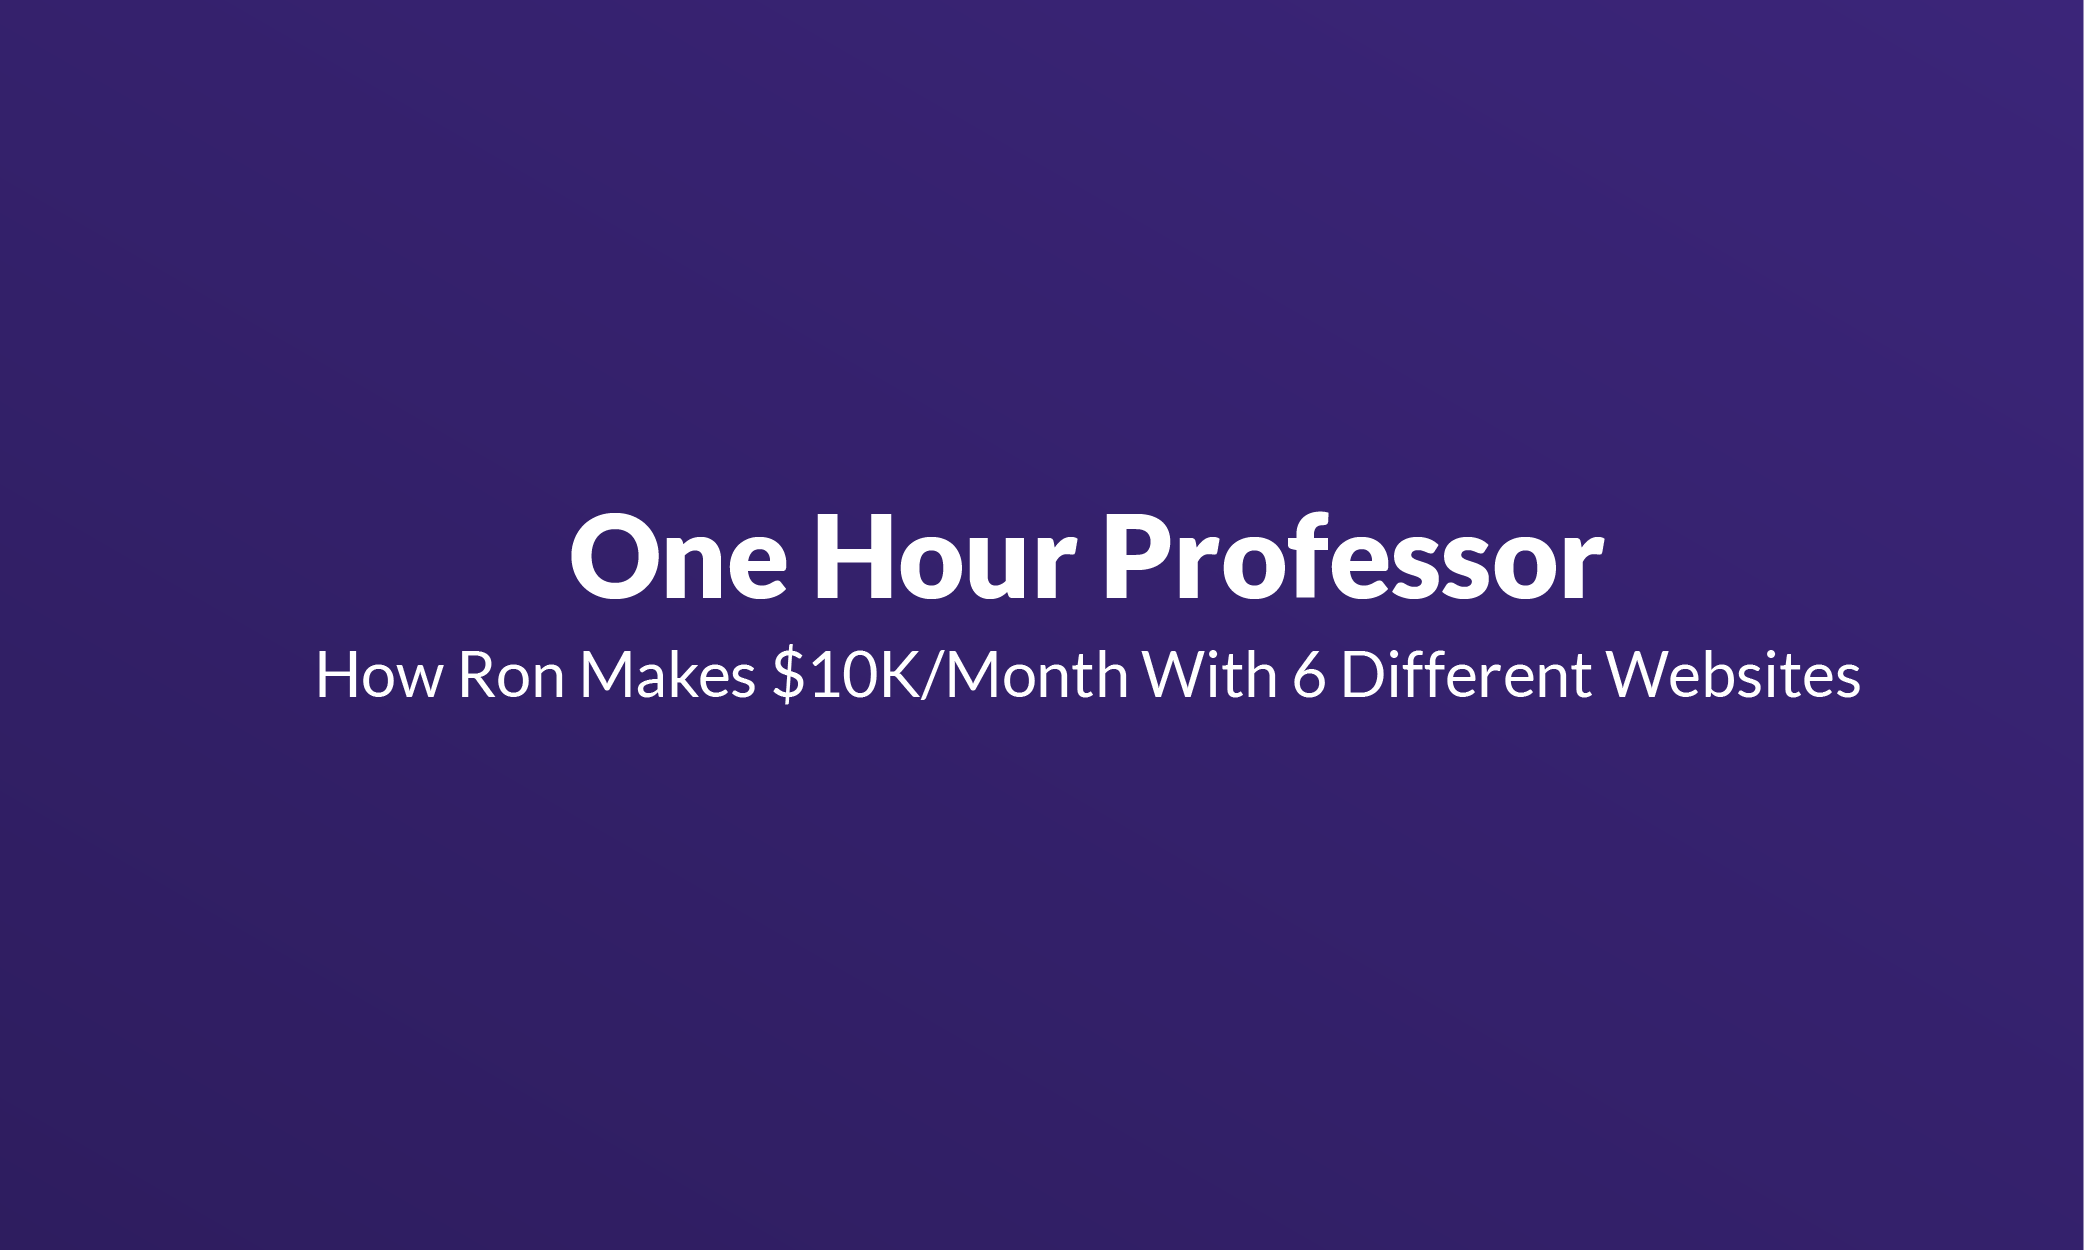 One Hour Professor Mistakes